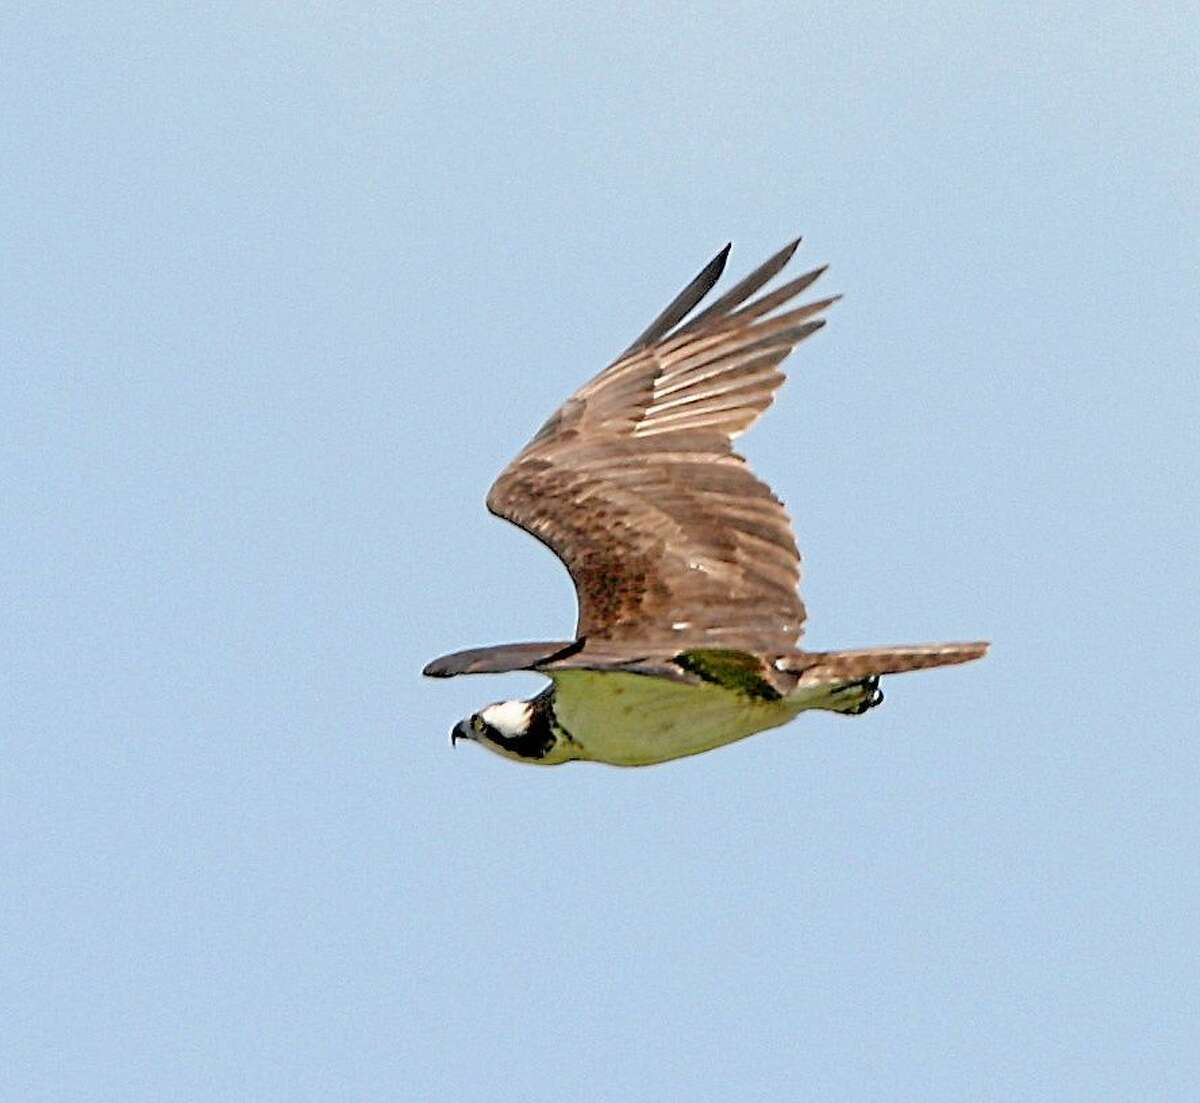 Participants in an upcoming talk in Essex will be introduced to the magnificent osprey.